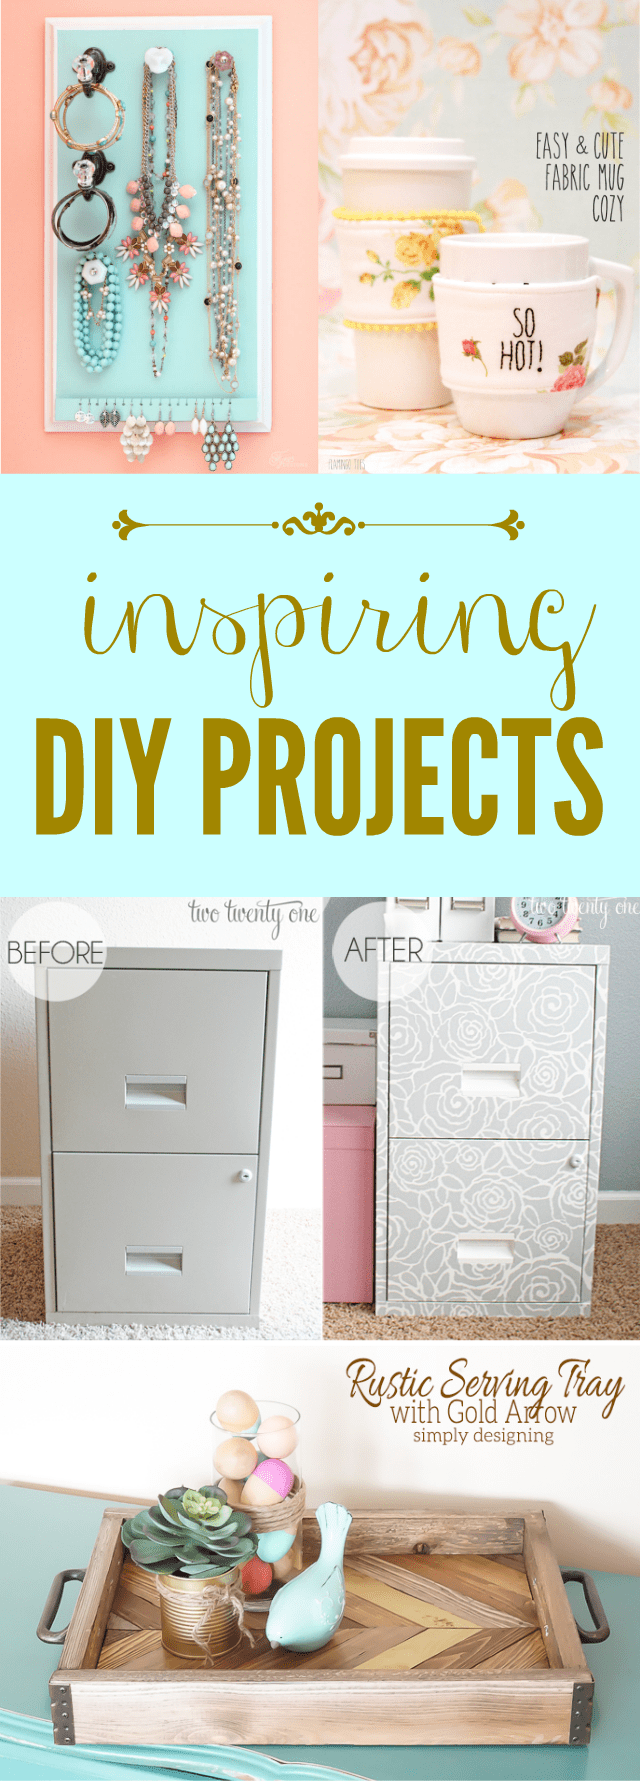 Inspiring DIY Projects to get your creative juices flowing in the new year!